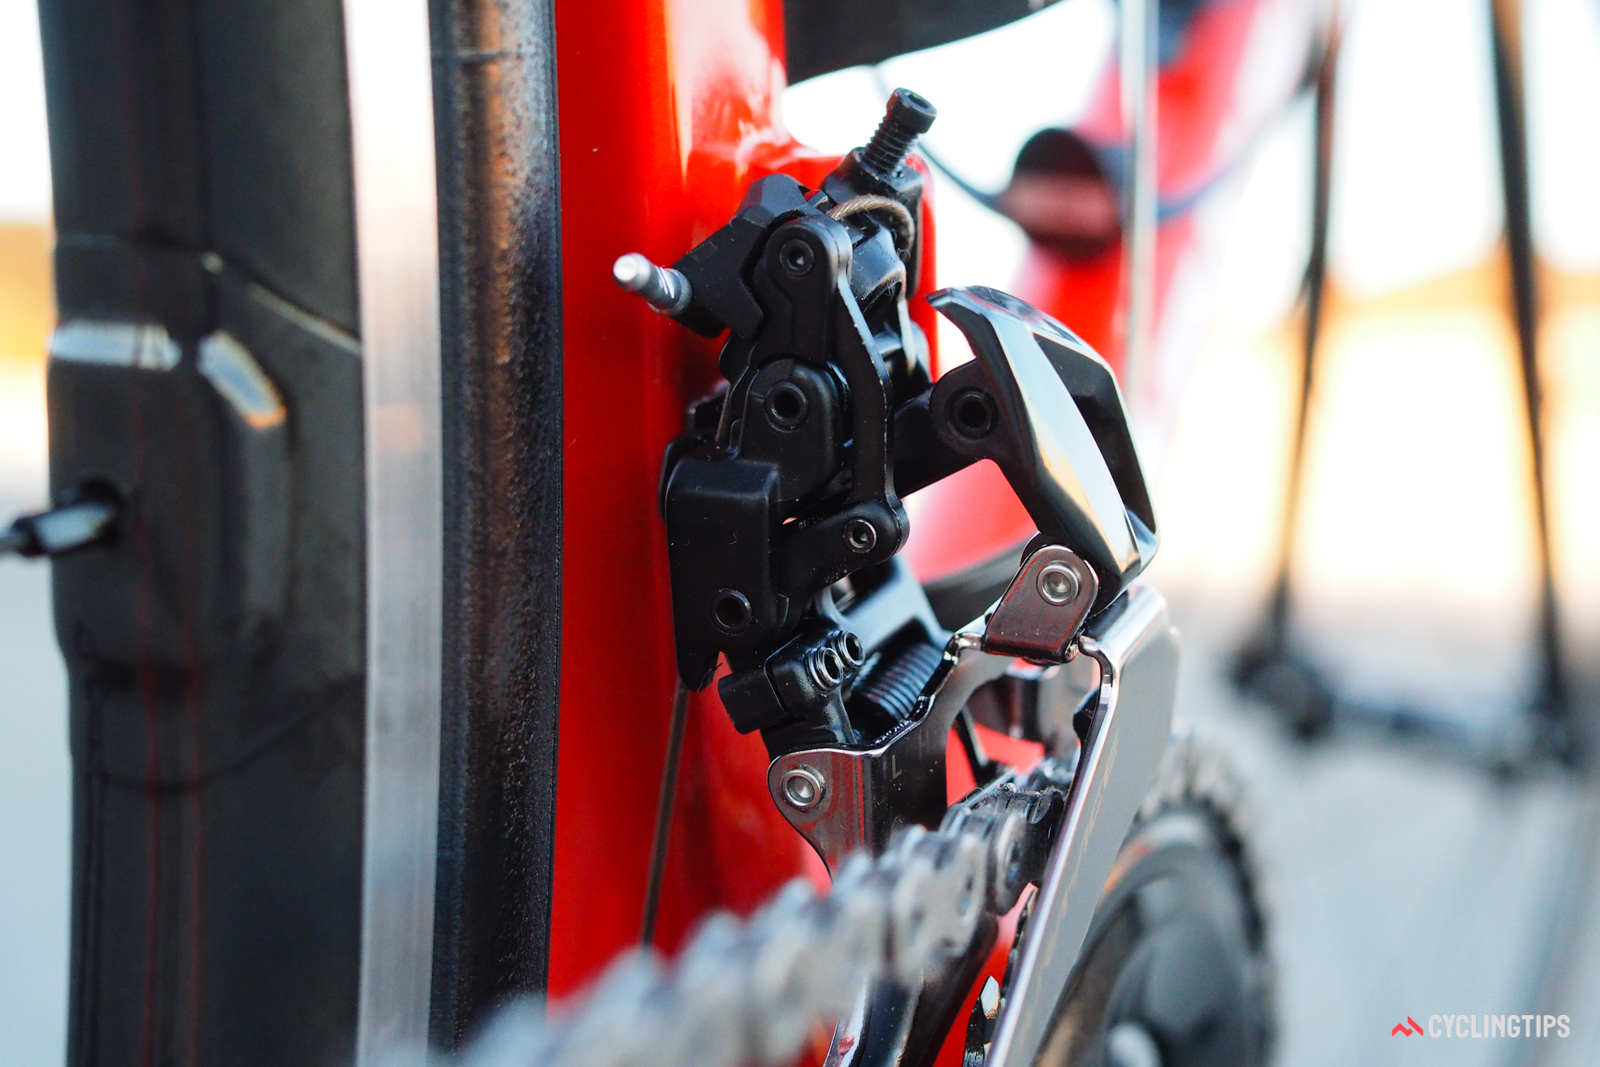 The front derailleur cage operates on one parallelogram linkage, but the cable pulls on its own complex arrangement. This allowed Shimano engineers to more finely tune the cable leverage ratio throughout the range of cage movement, resulting in more precise positionoing and shorter shift lever throws.